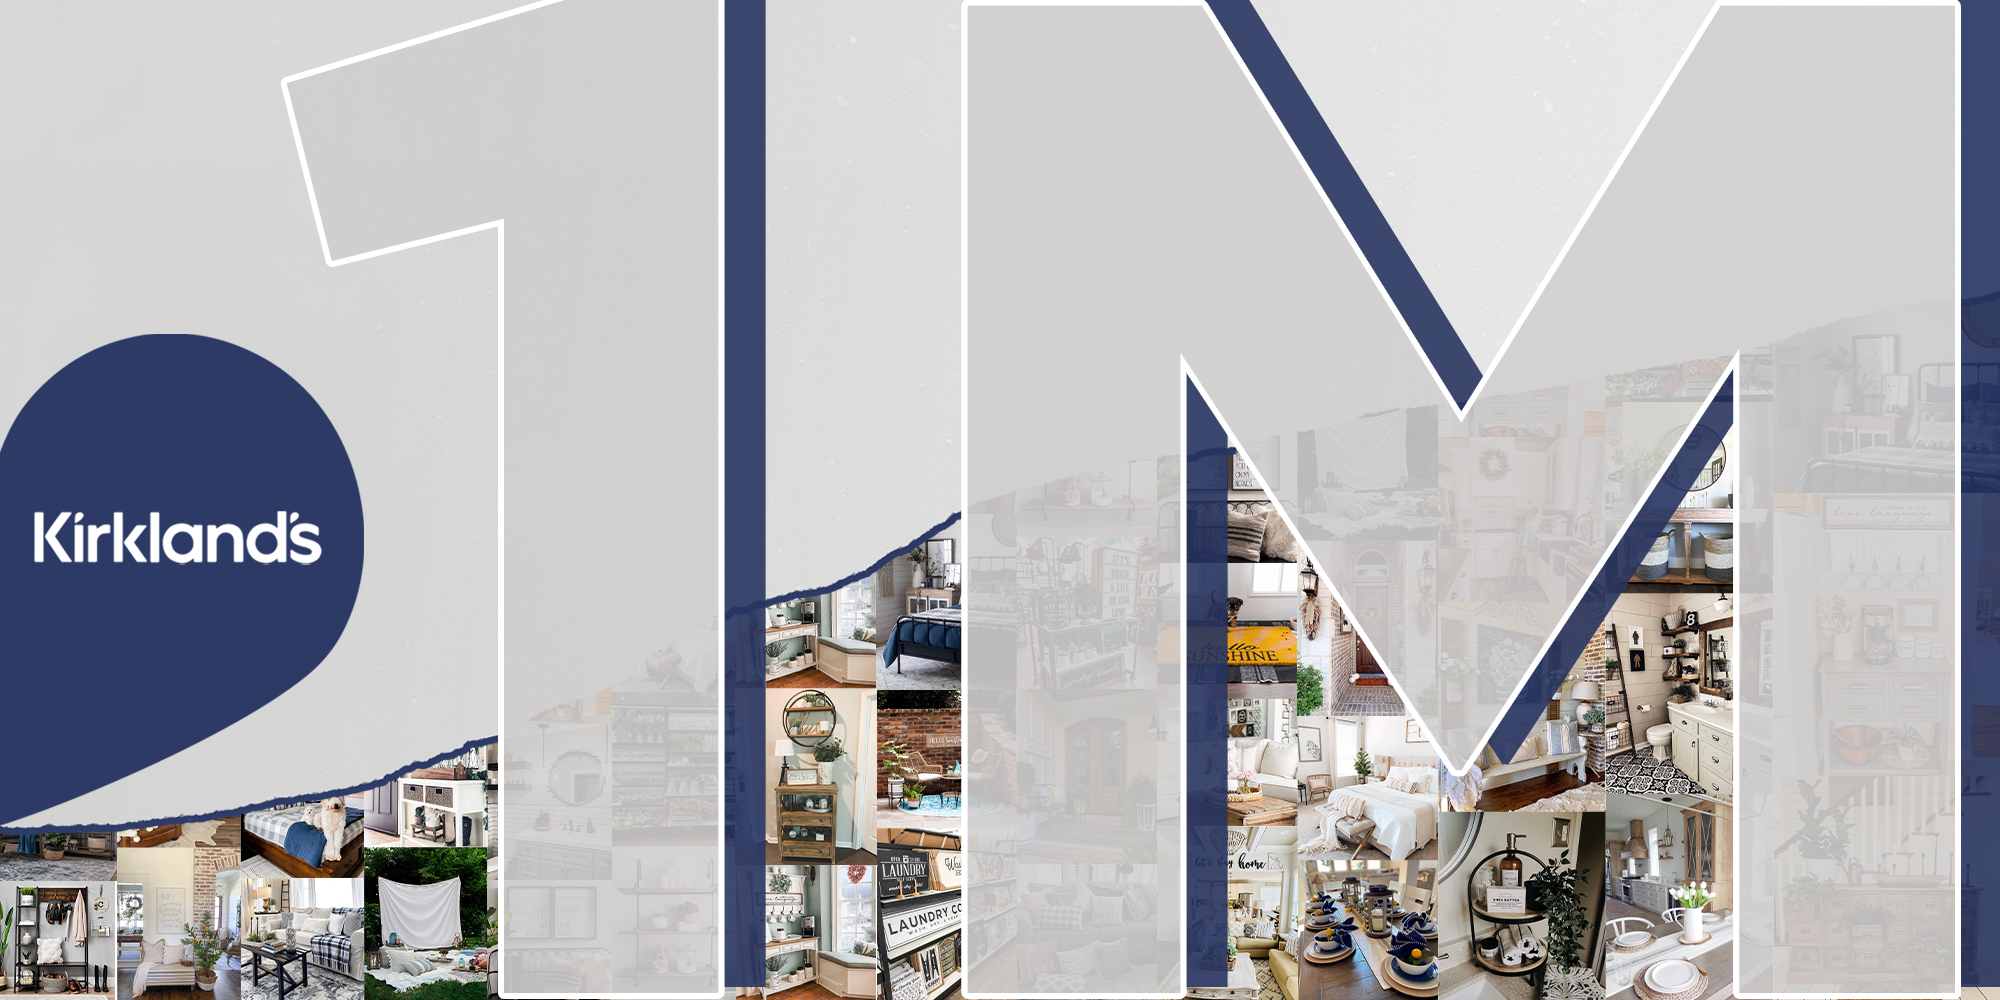 Gray and navy graphic featuring Kirkland's logo, and 1M, standing for 1 million in large letters. In the background is a growth line representing follower increase, as well as top performing images that were featured in Kirkland's Instagram posts.